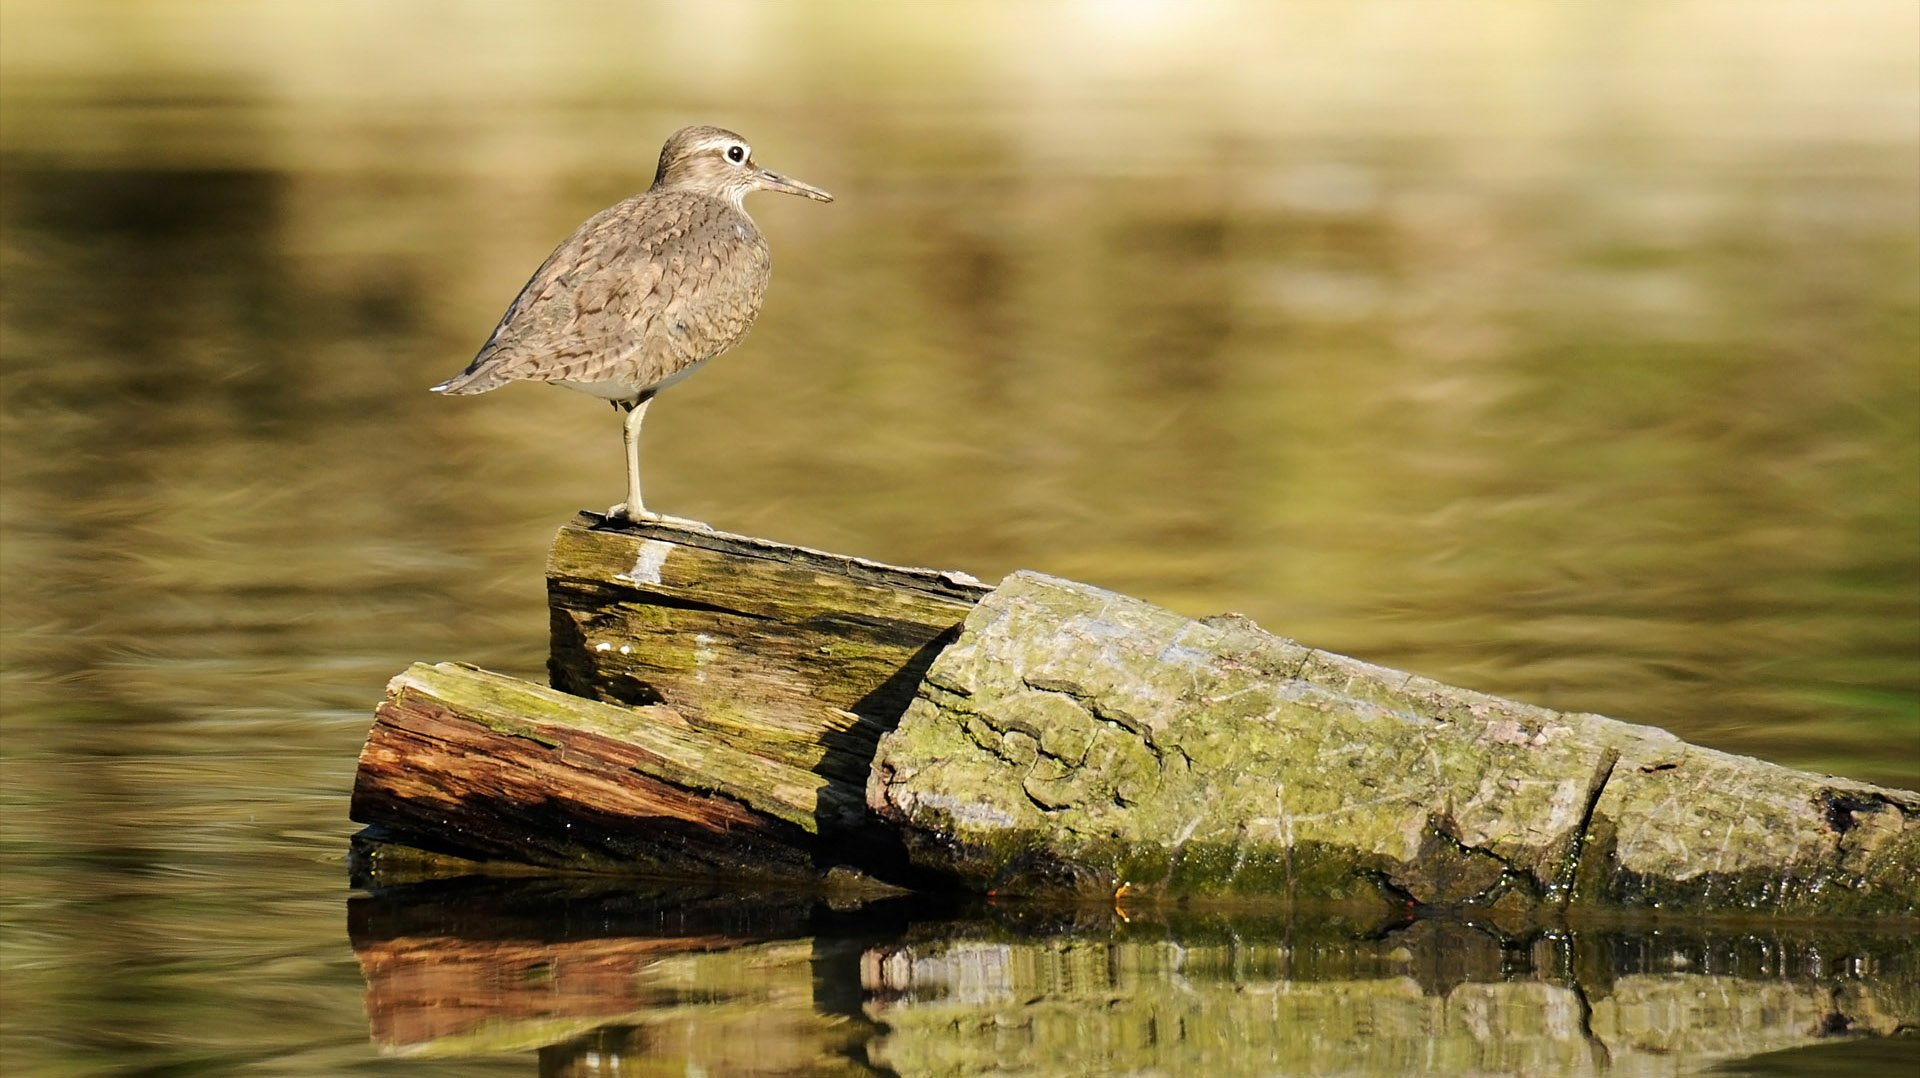 Sandpiper Wallpapers and Backgrounds Image